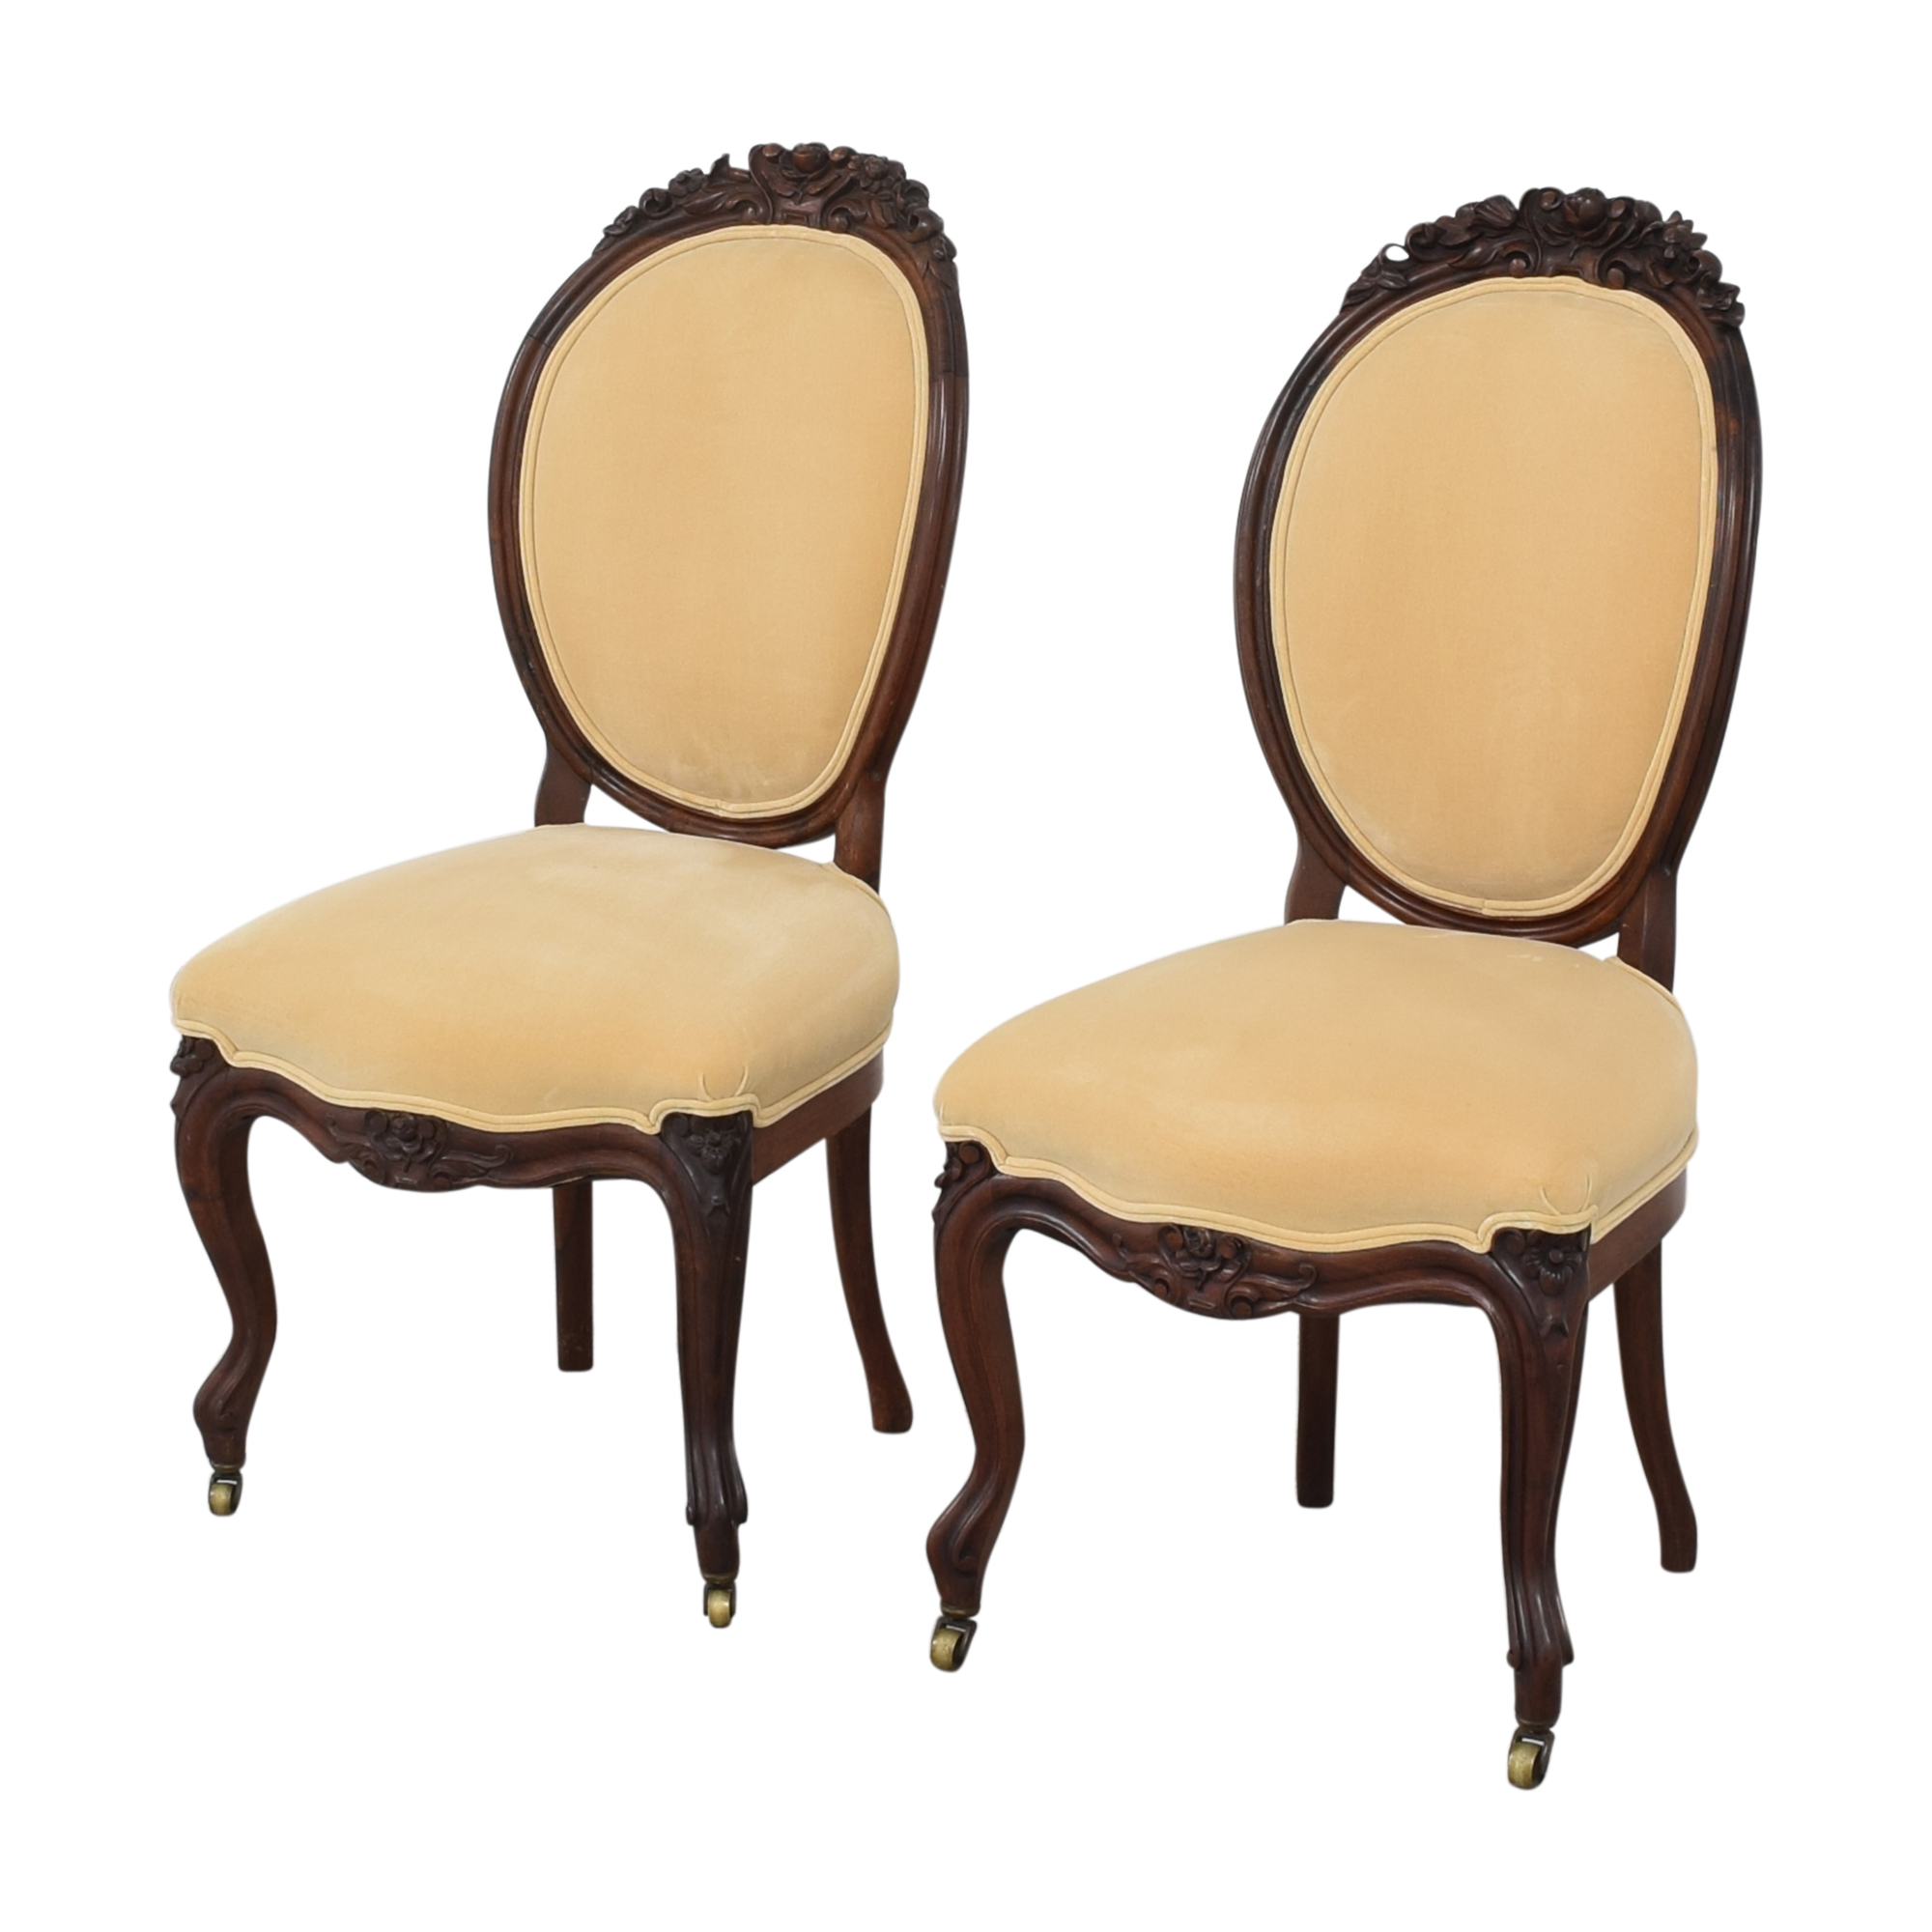 Rounded Back Upholstered Side Chairs / Dining Chairs